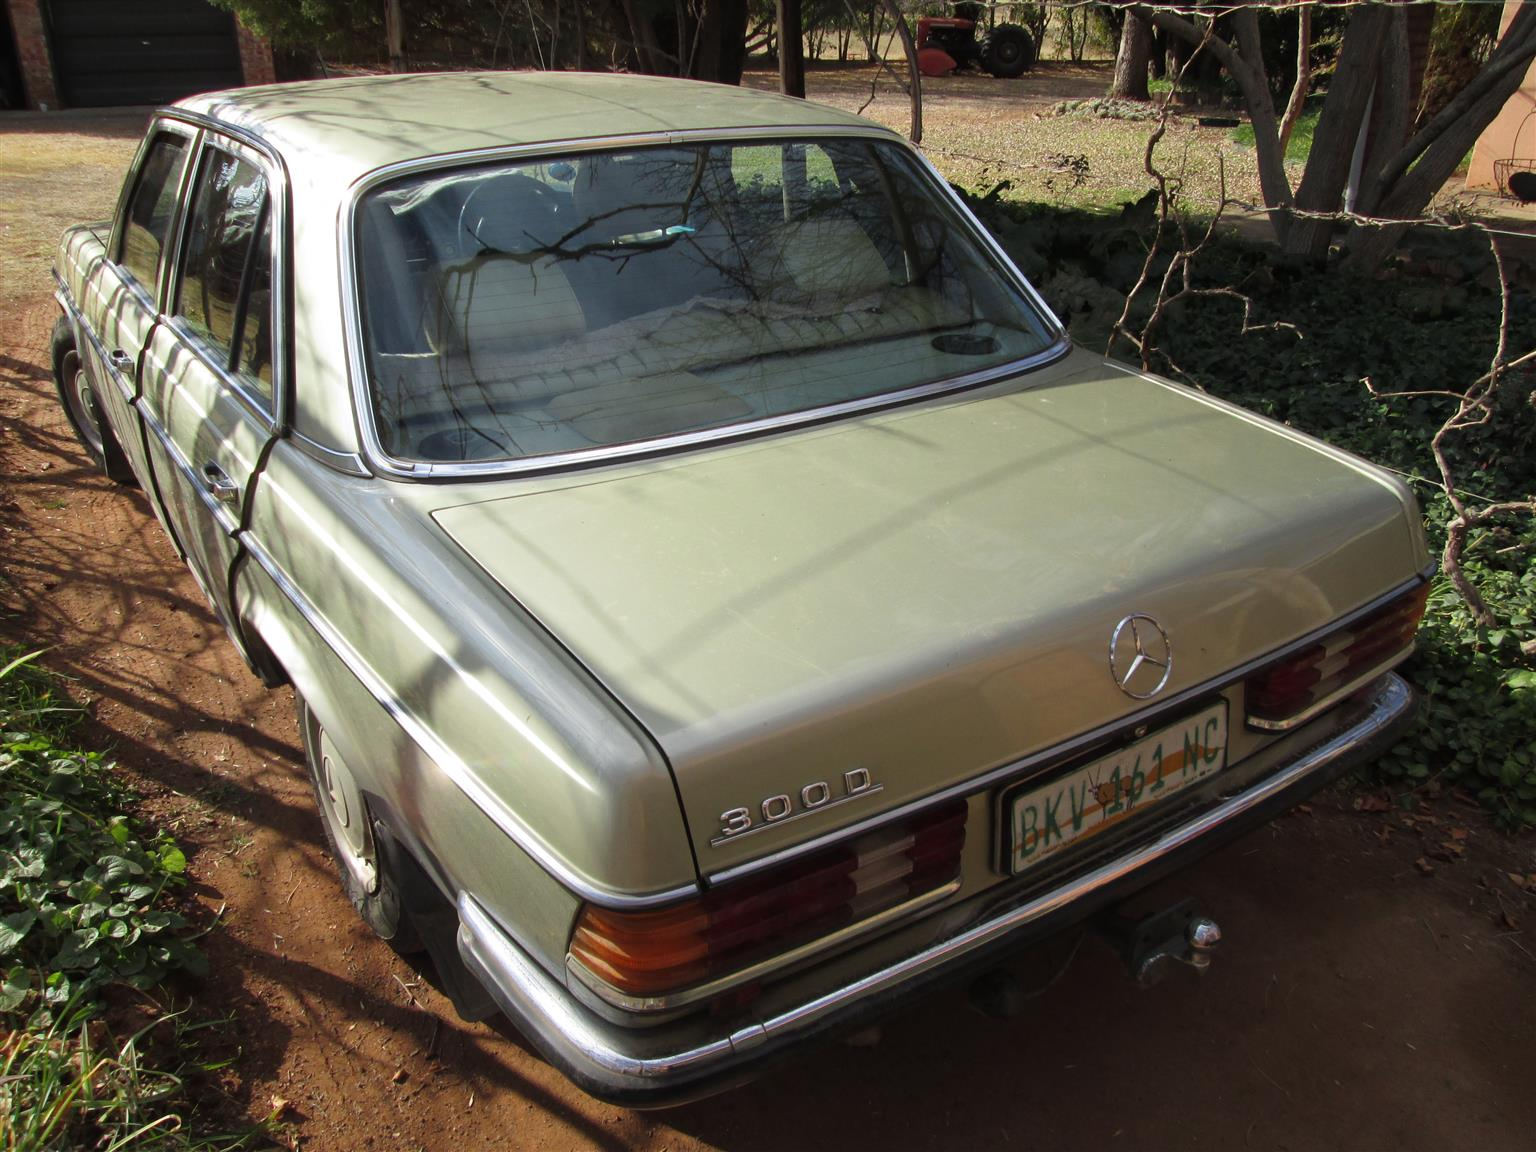 1981 Mercedes Benz Diesel 300D W123 Manual, engine overhauled, starts immediately